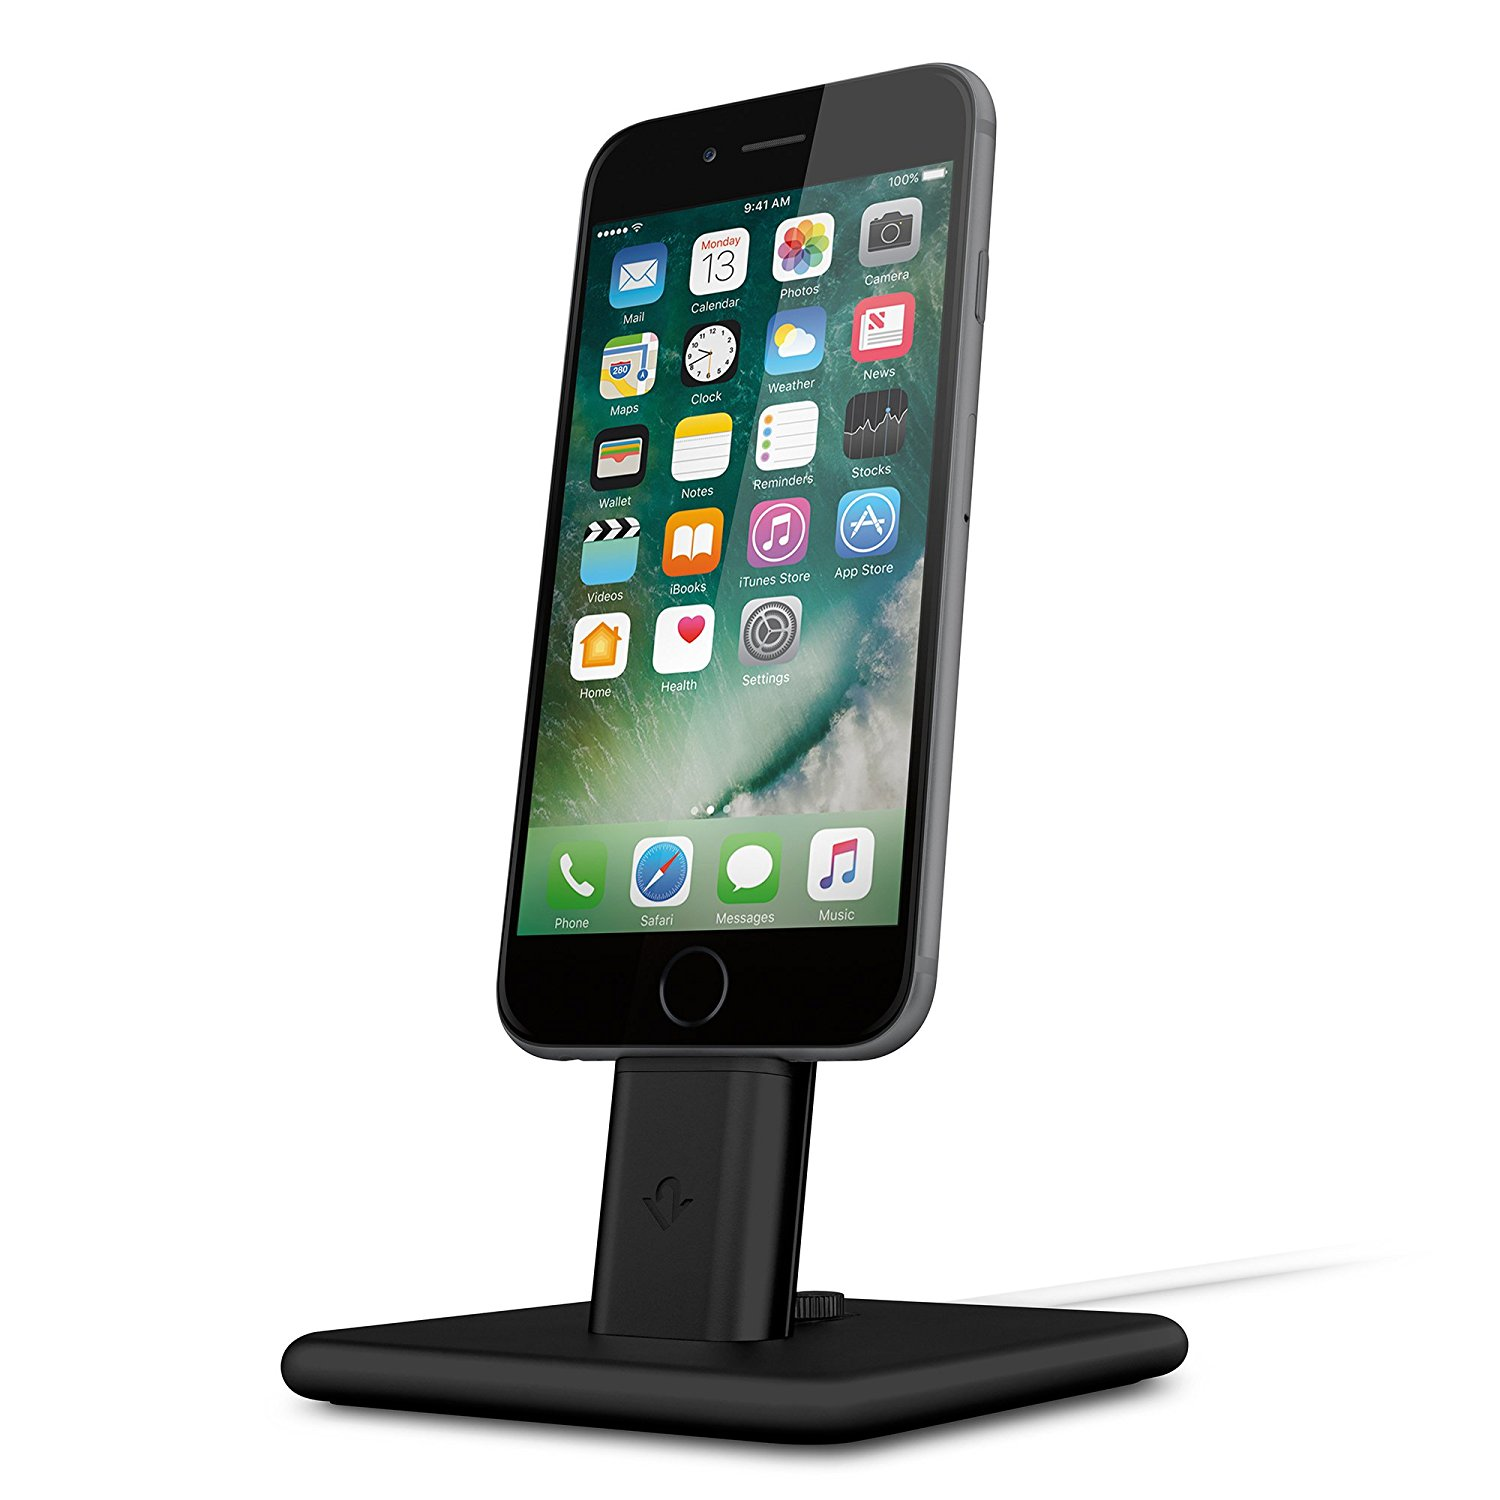 The [Twelve South HiRise 2](https://www.amazon.com/dp/B01LD85JIK?tag=toolstoysdeals-20) is a great iPhone/iPad stand for your desk or nightstand.